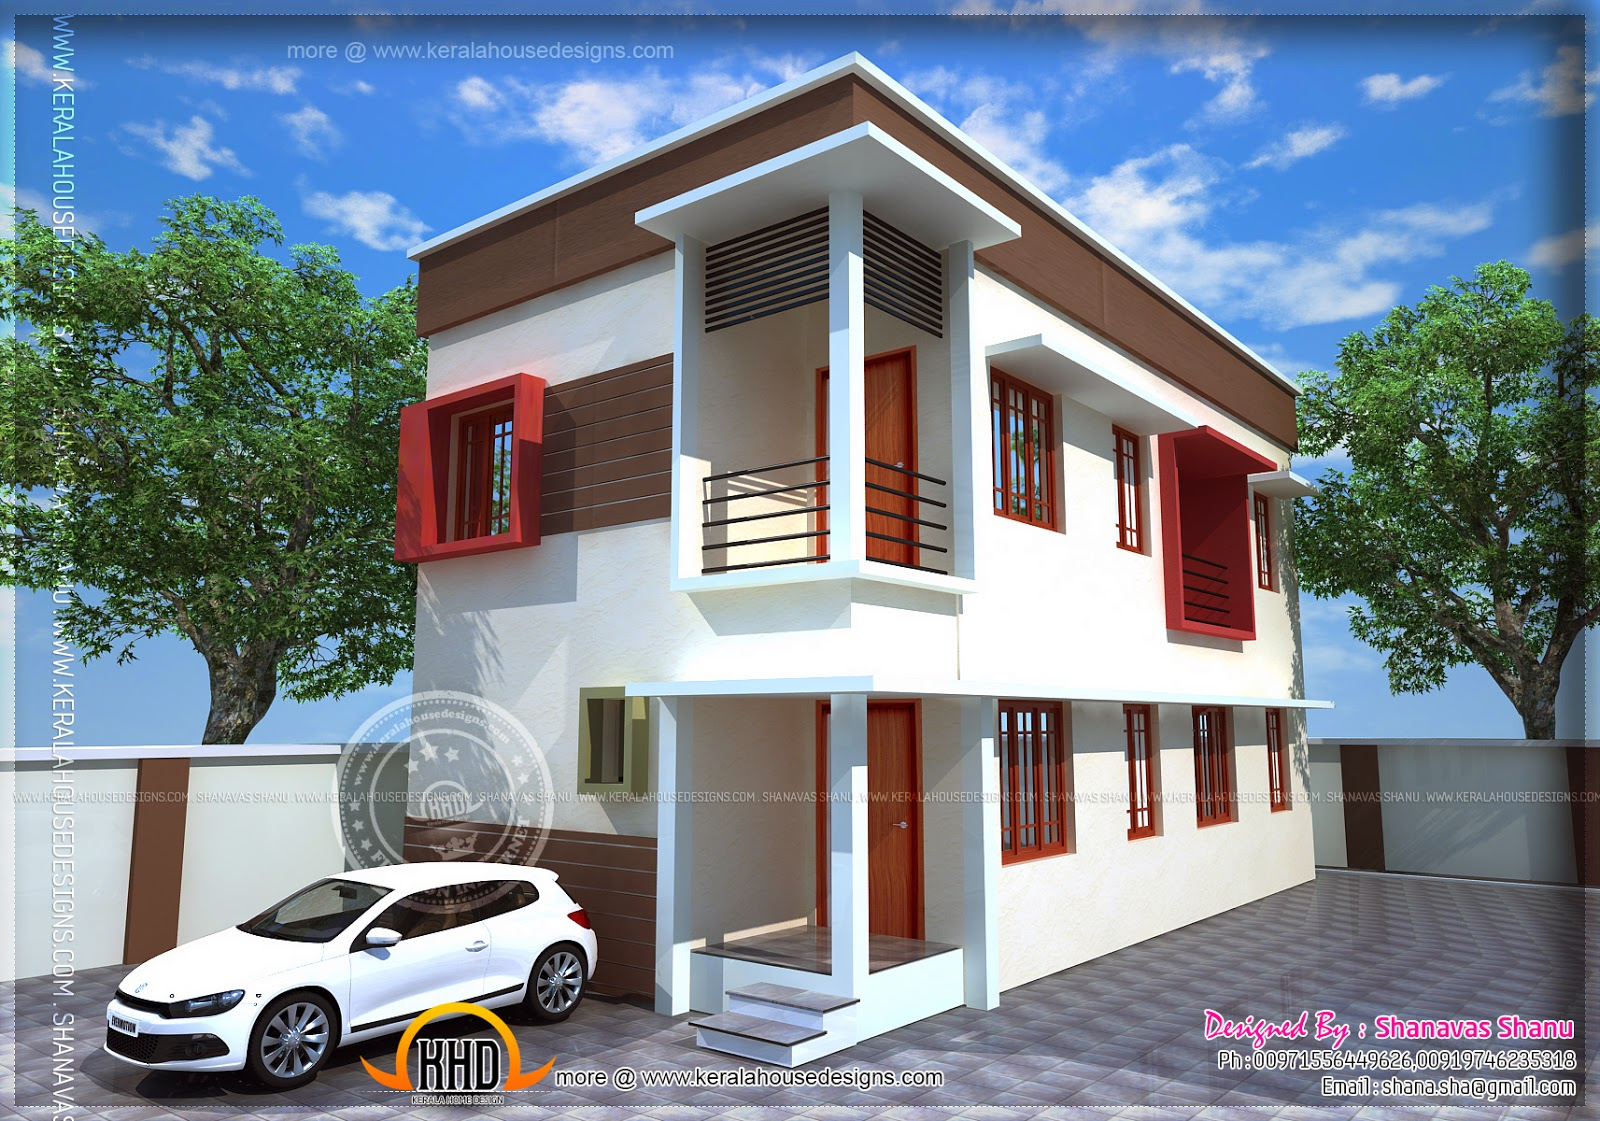 House Plans For 1200 Sq Ft Small Plot Villa In 2 75 Cents Of Land Kerala Home